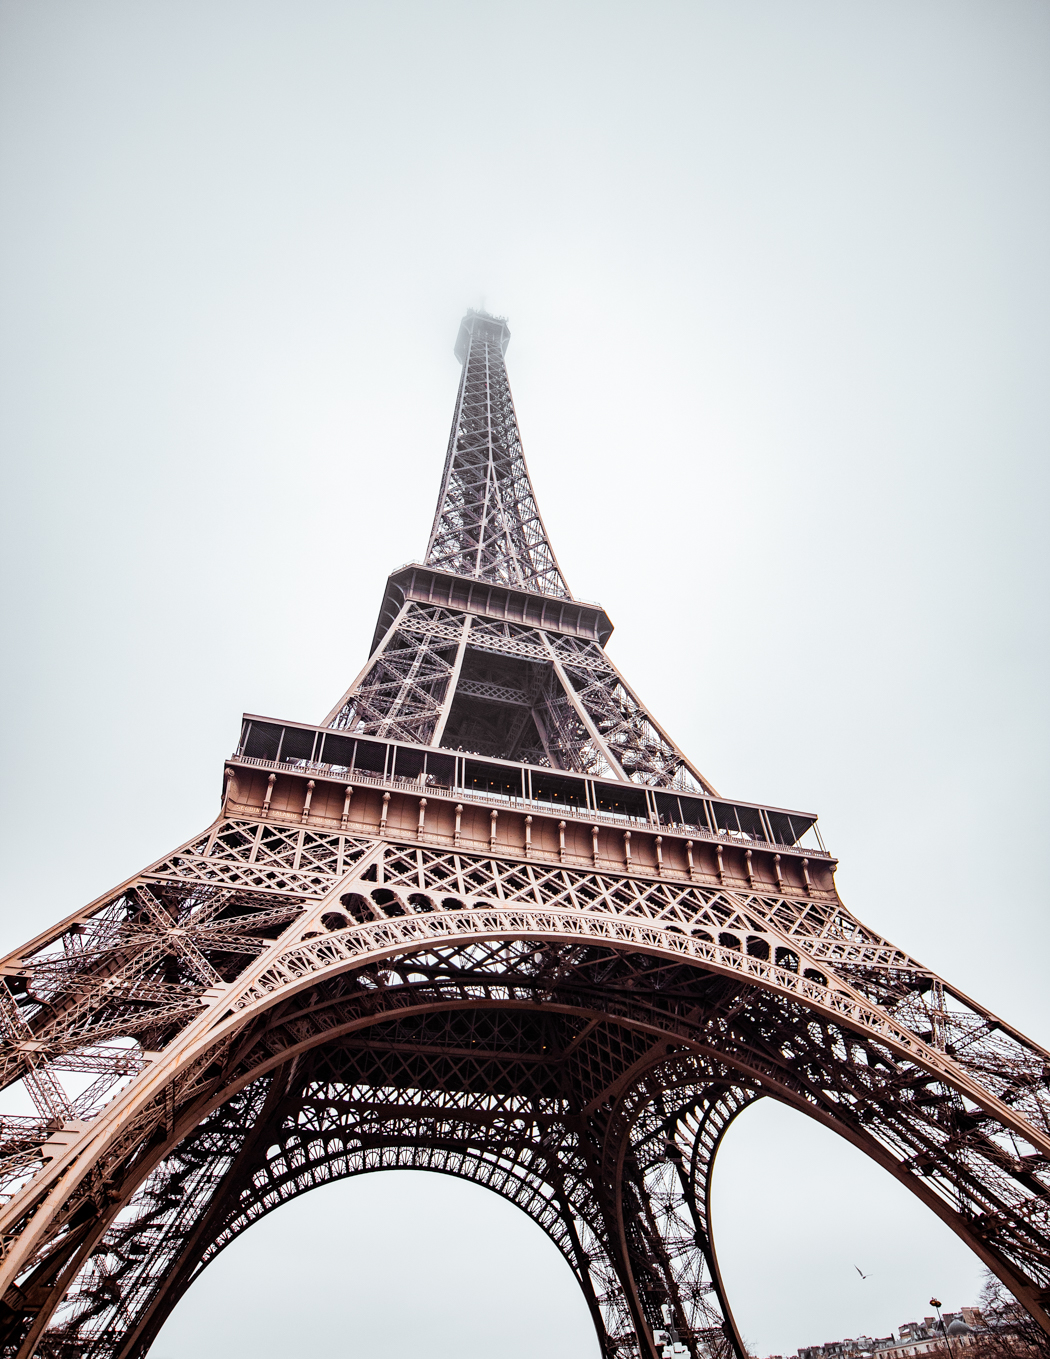 travelblog-travelblogger-travel-blog-blogger-paris-fewodirekt-lindarella-14